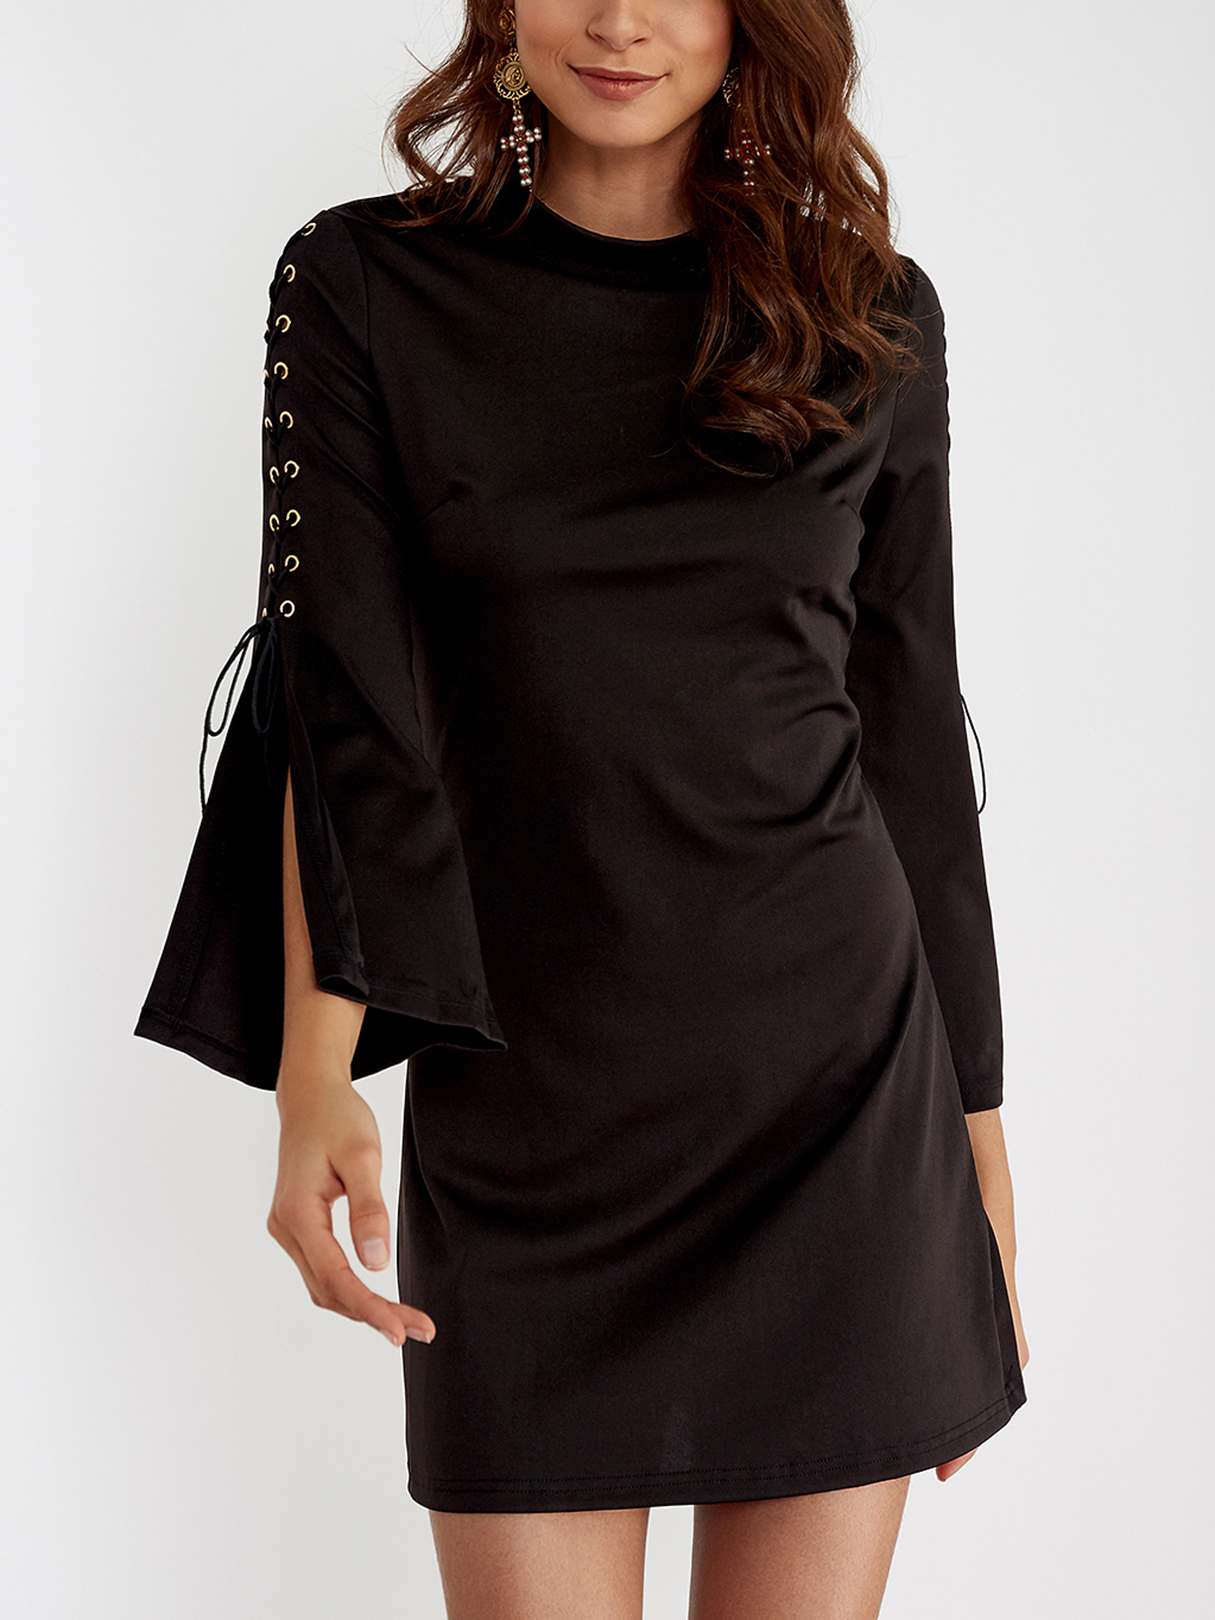 Black Lace-up Design Flared Sleeves Zipped Back Mini Dress lace insert flared sleeves mini dress